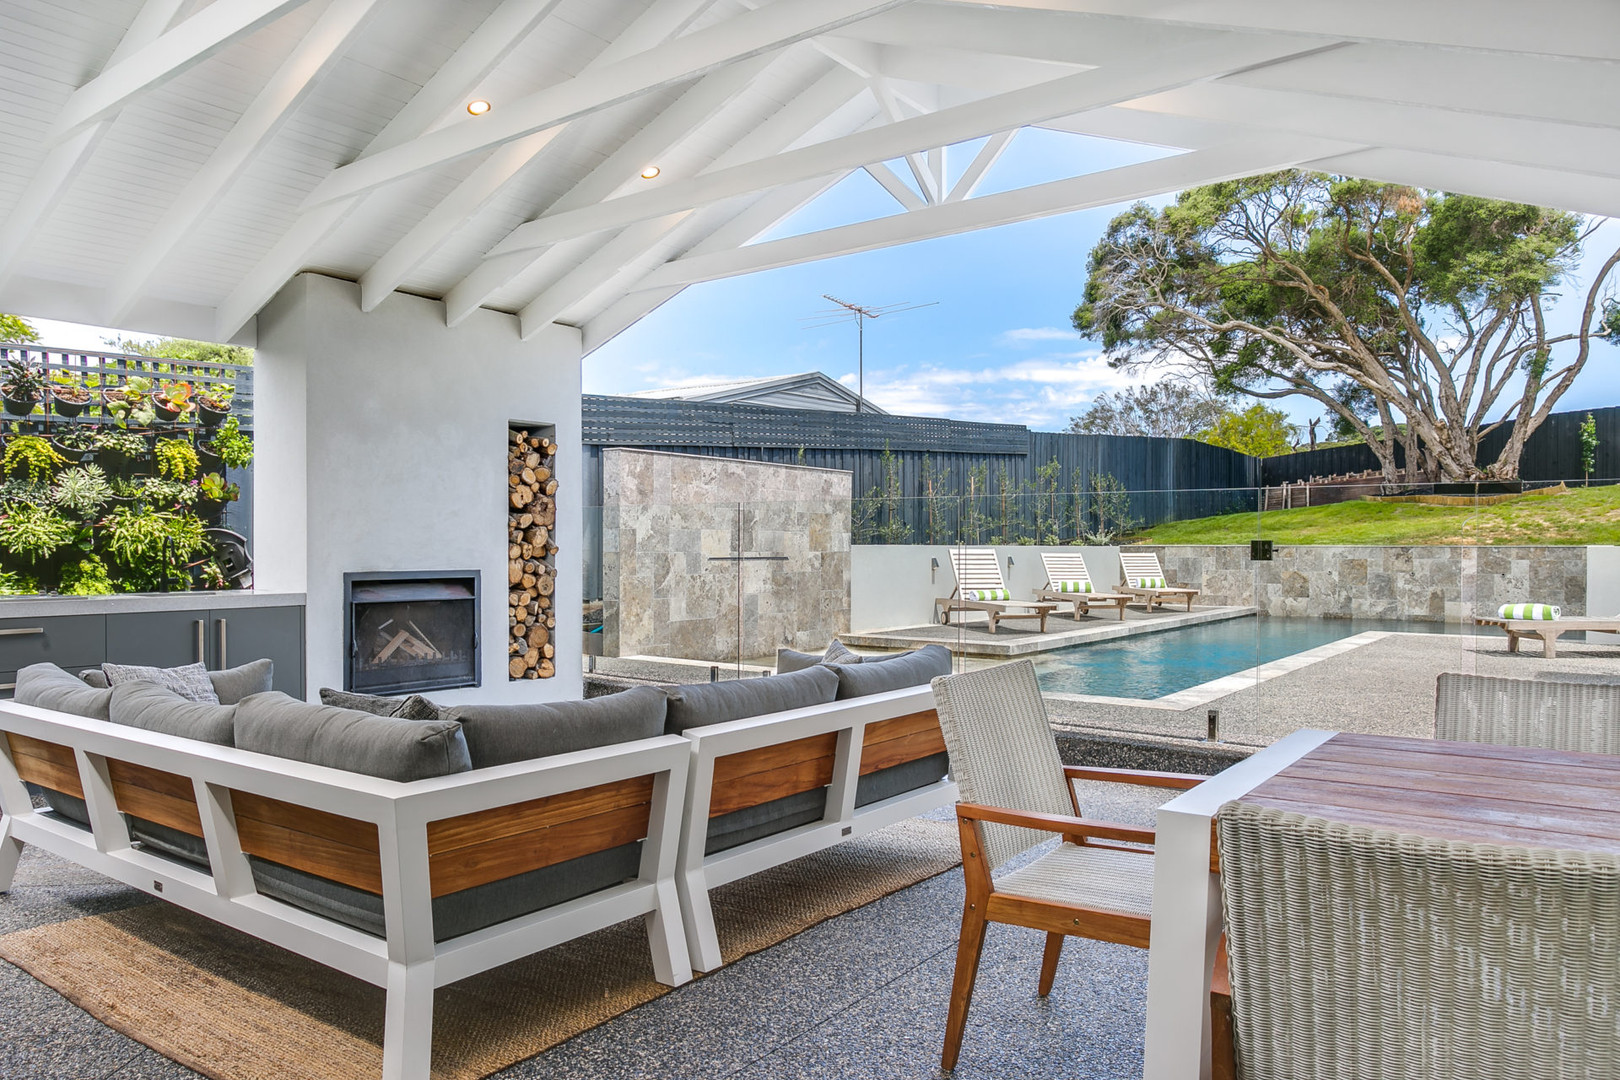 Pool views from entertaining space